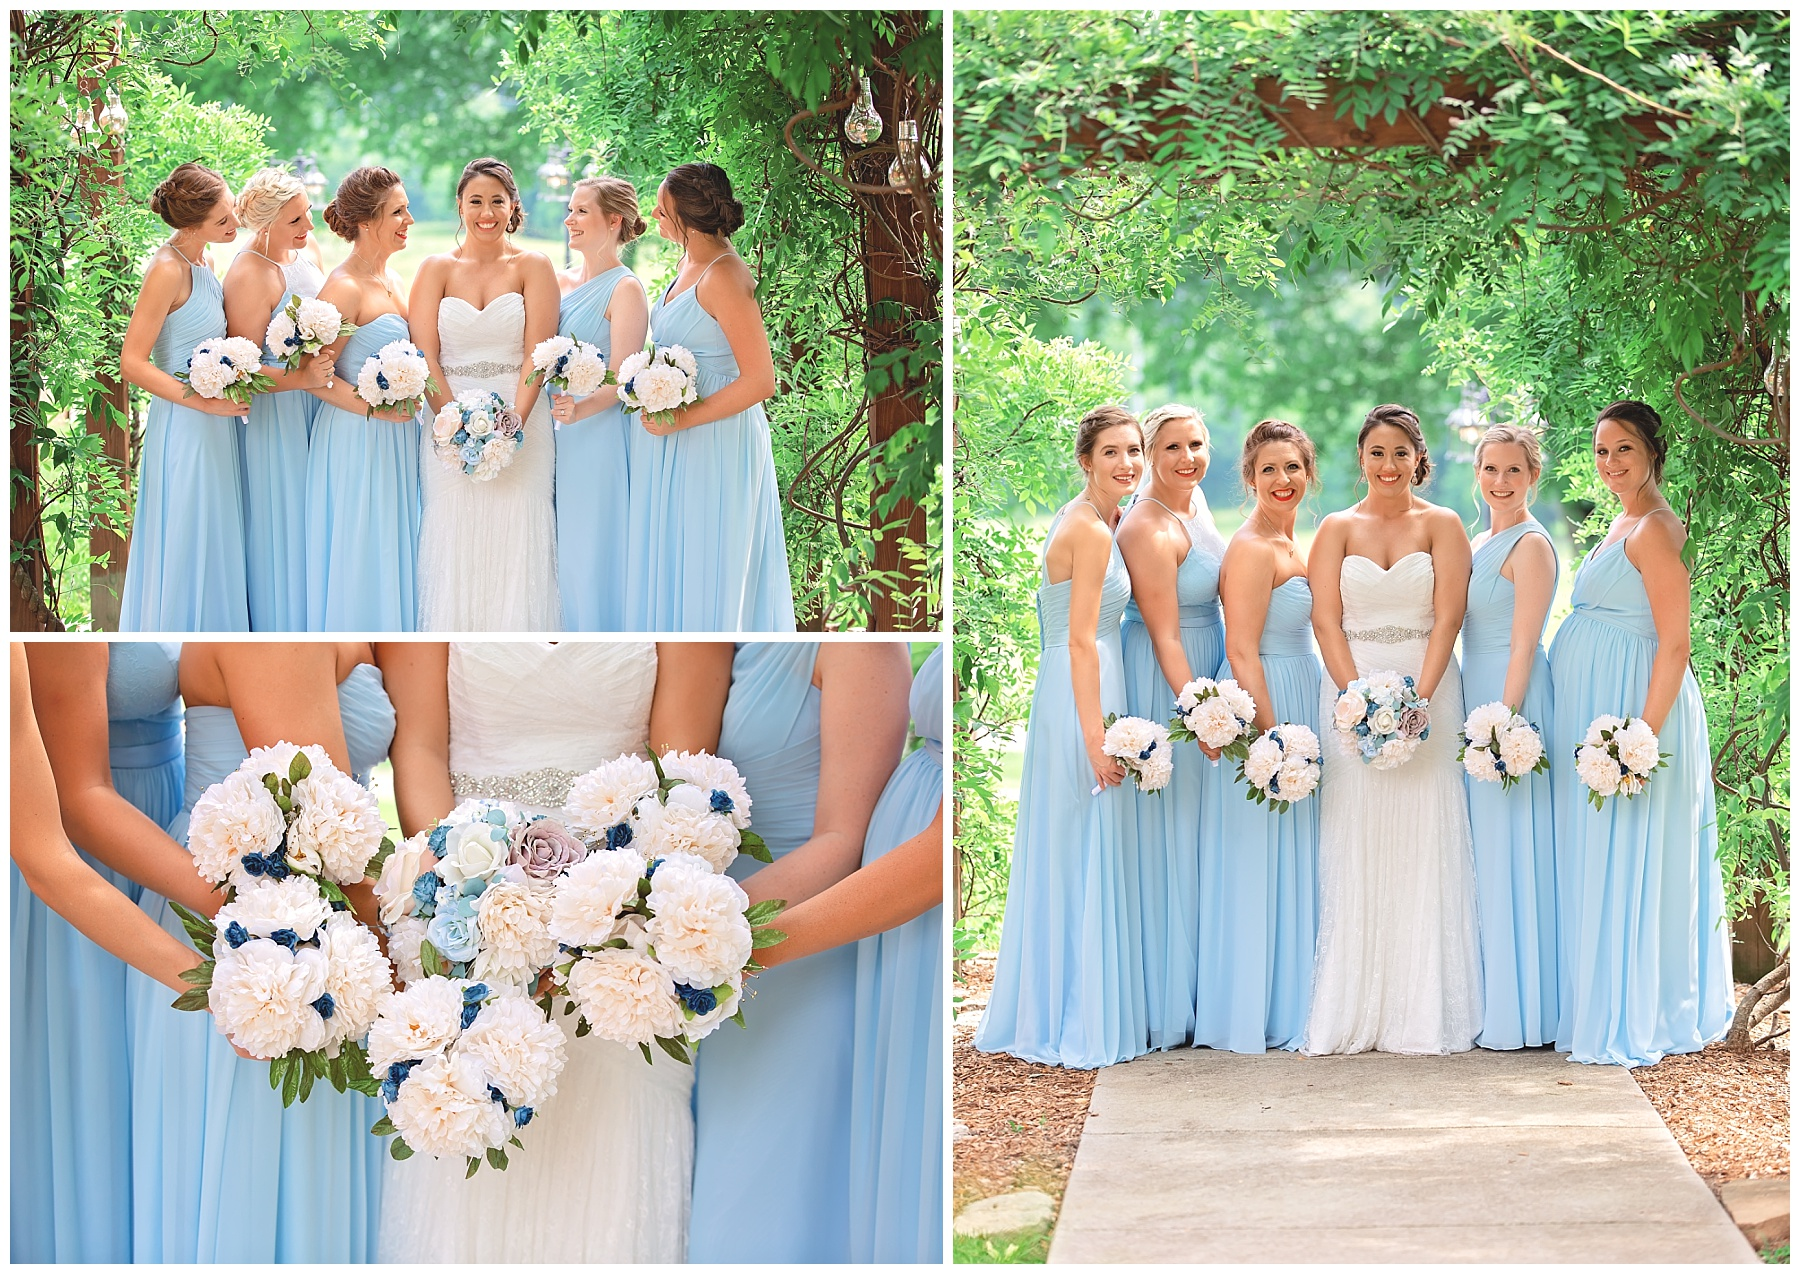 Bridesmaids at Rock Creek Farm in Gallatin Tn - Nashville Wedding